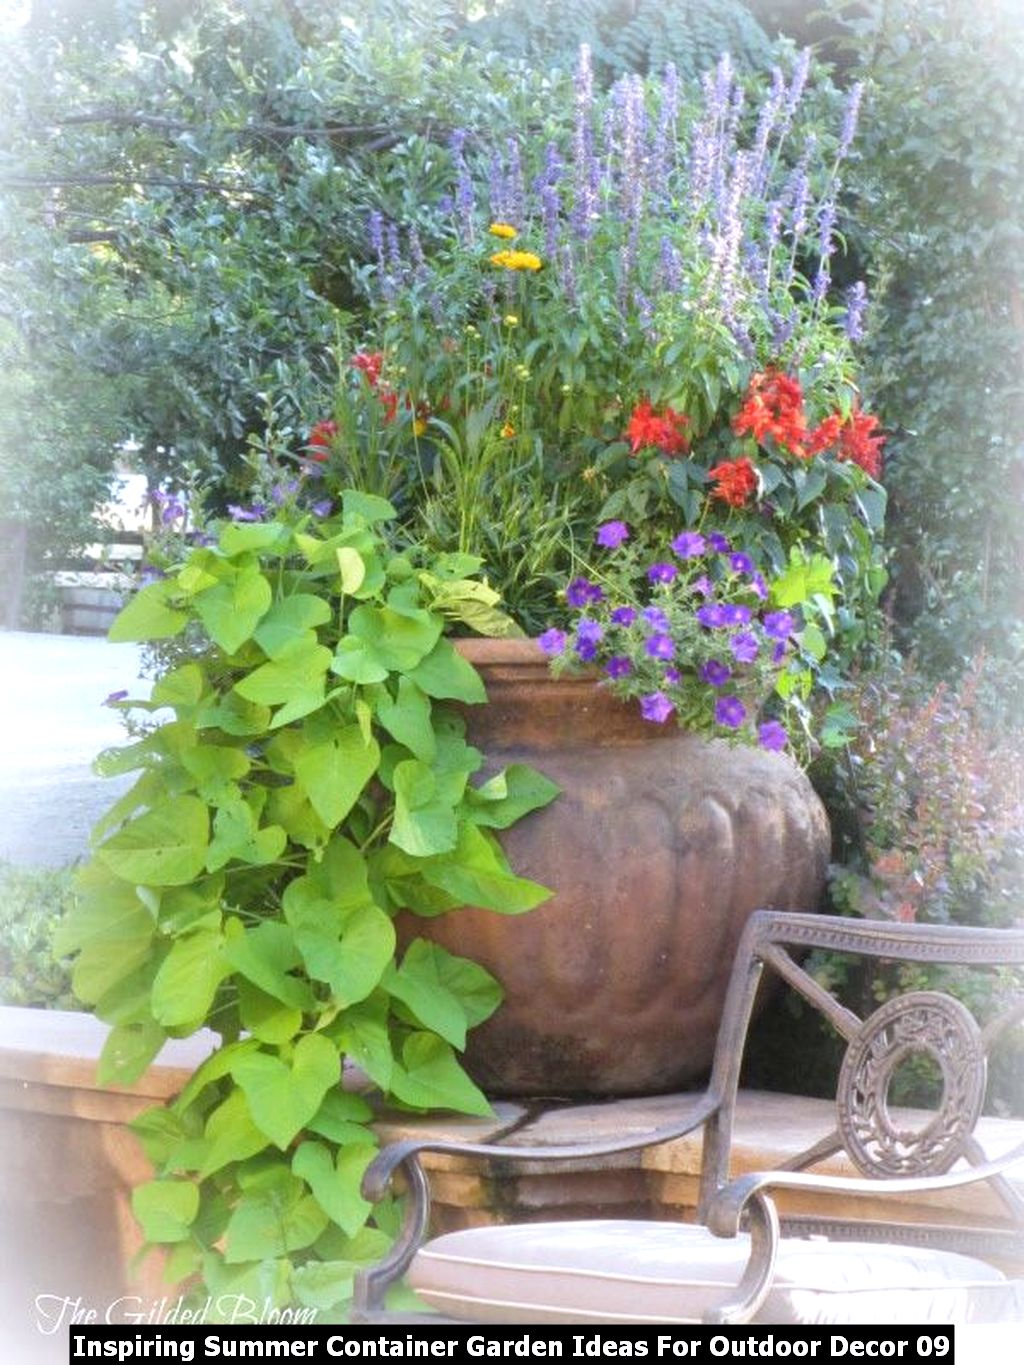 Inspiring Summer Container Garden Ideas For Outdoor Decor 09